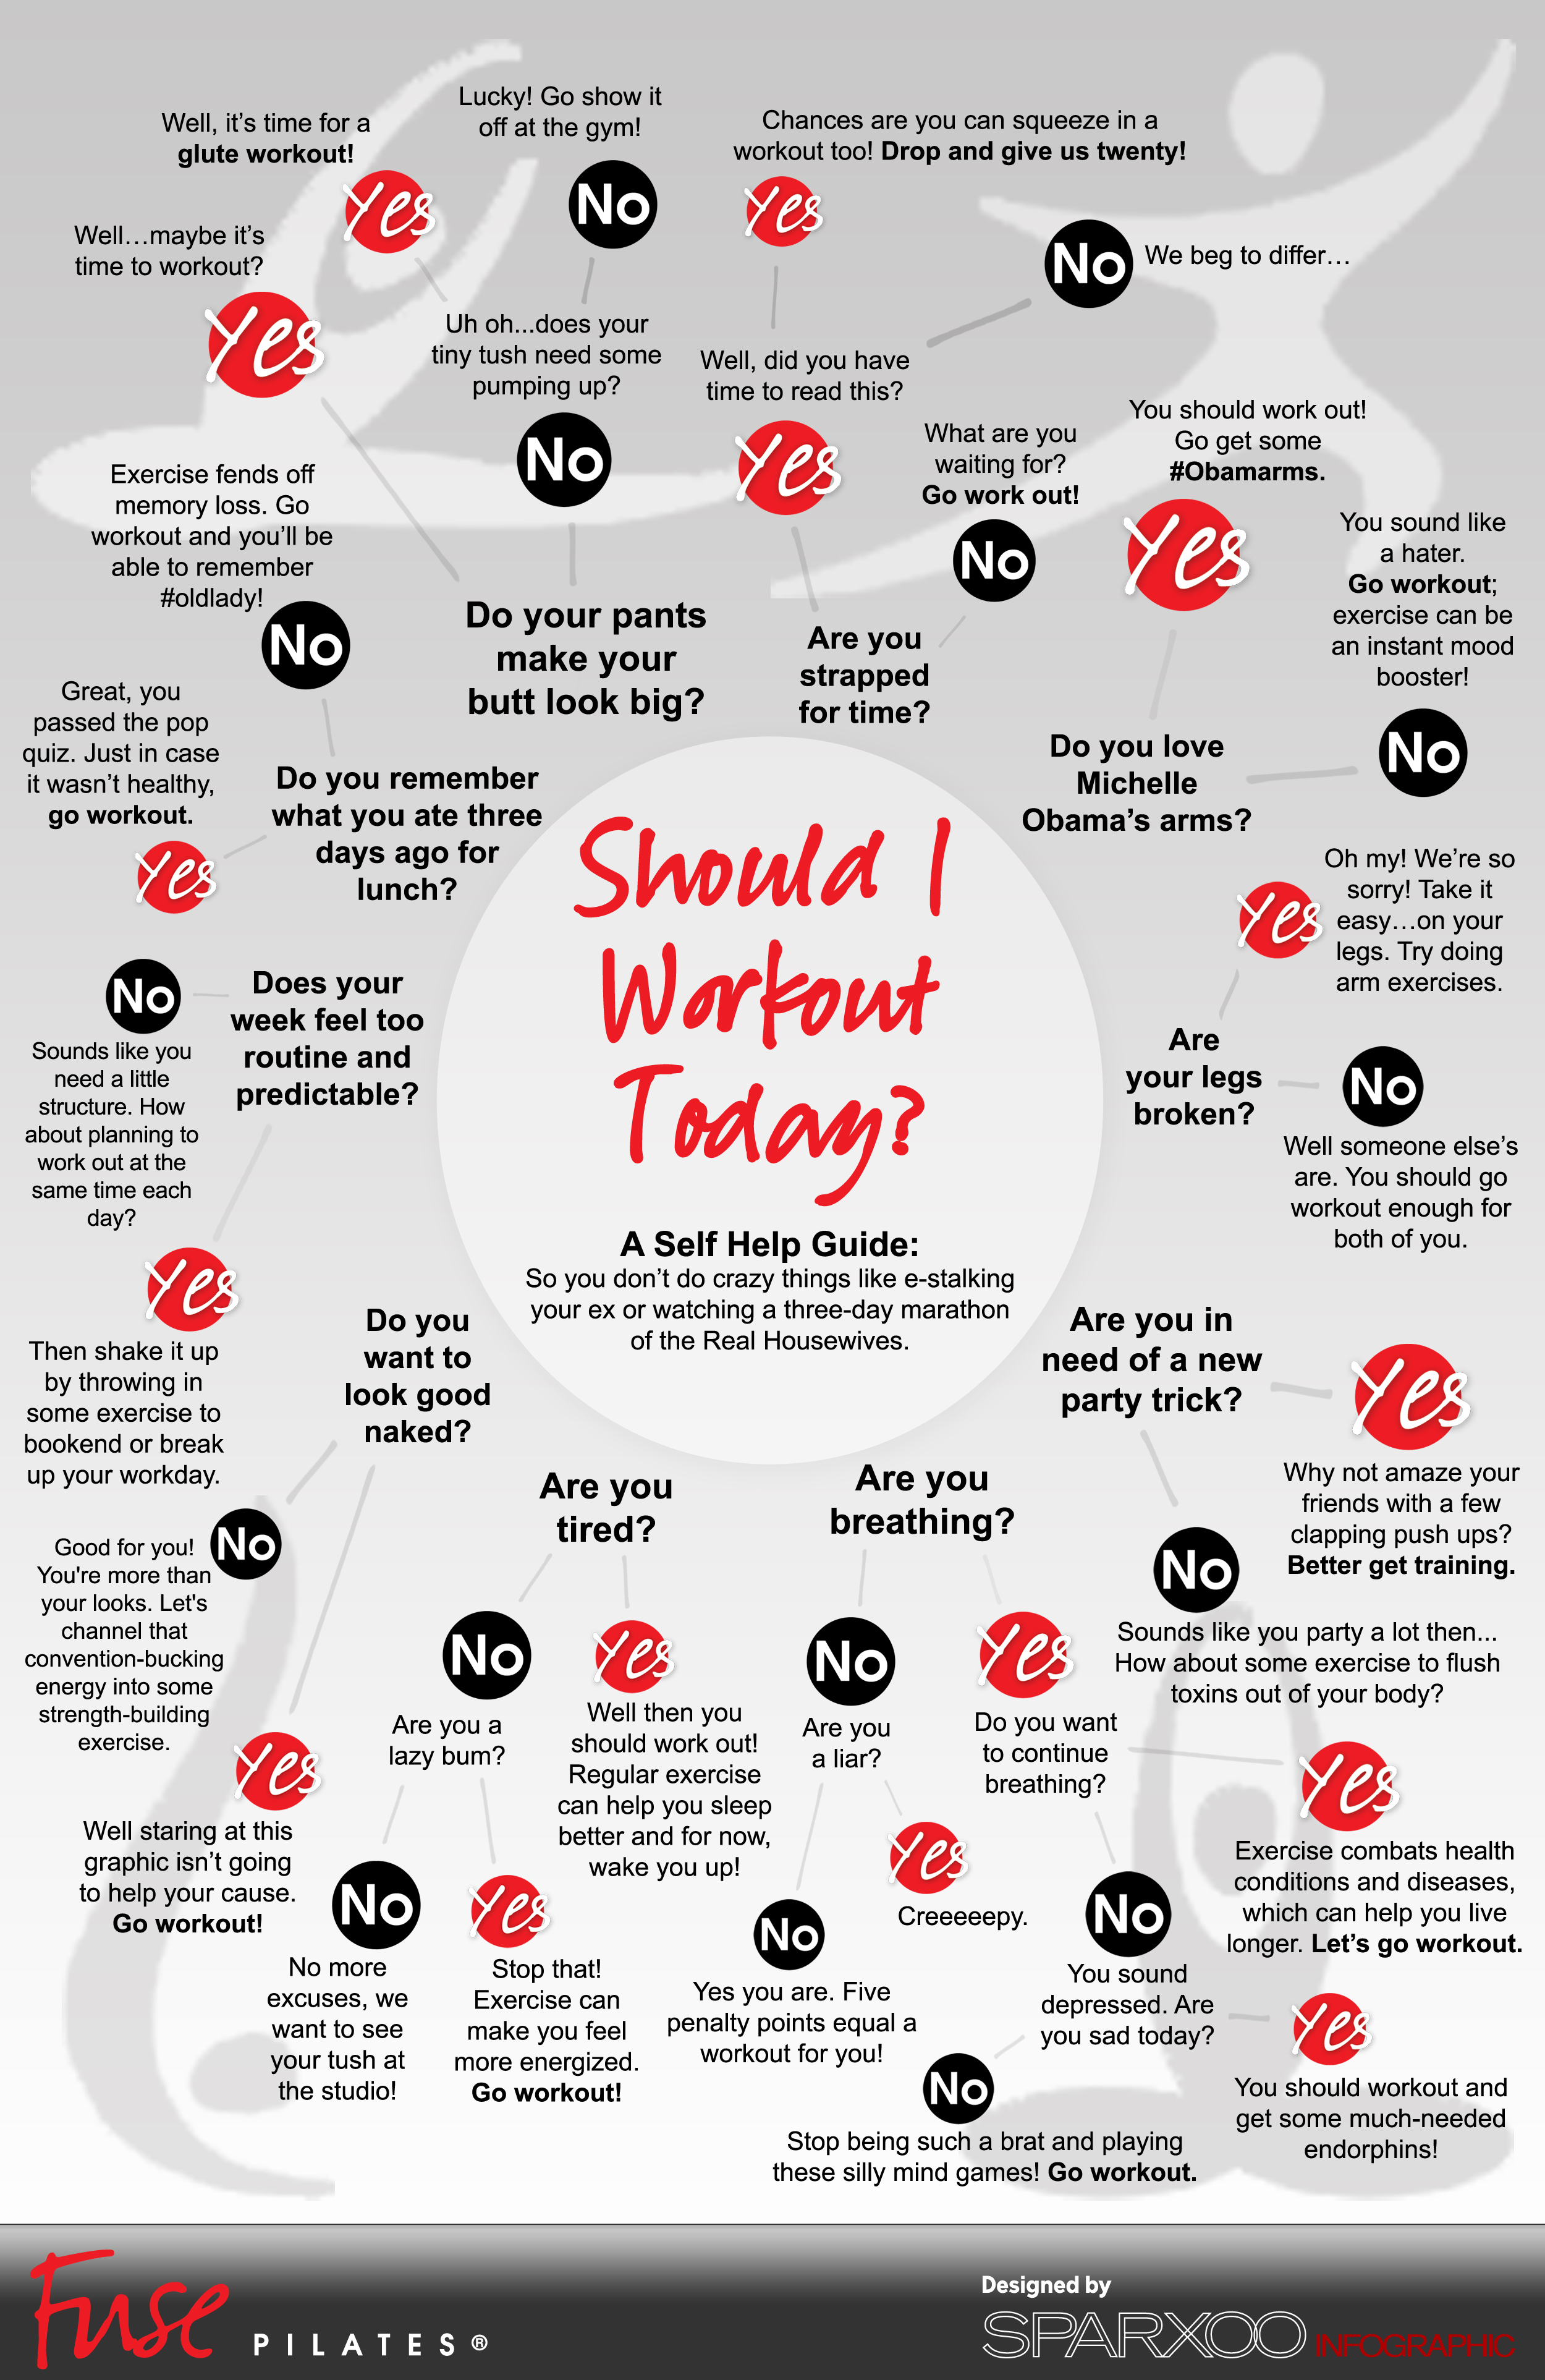 should-i-workout-today_50c7b7eadd0d9